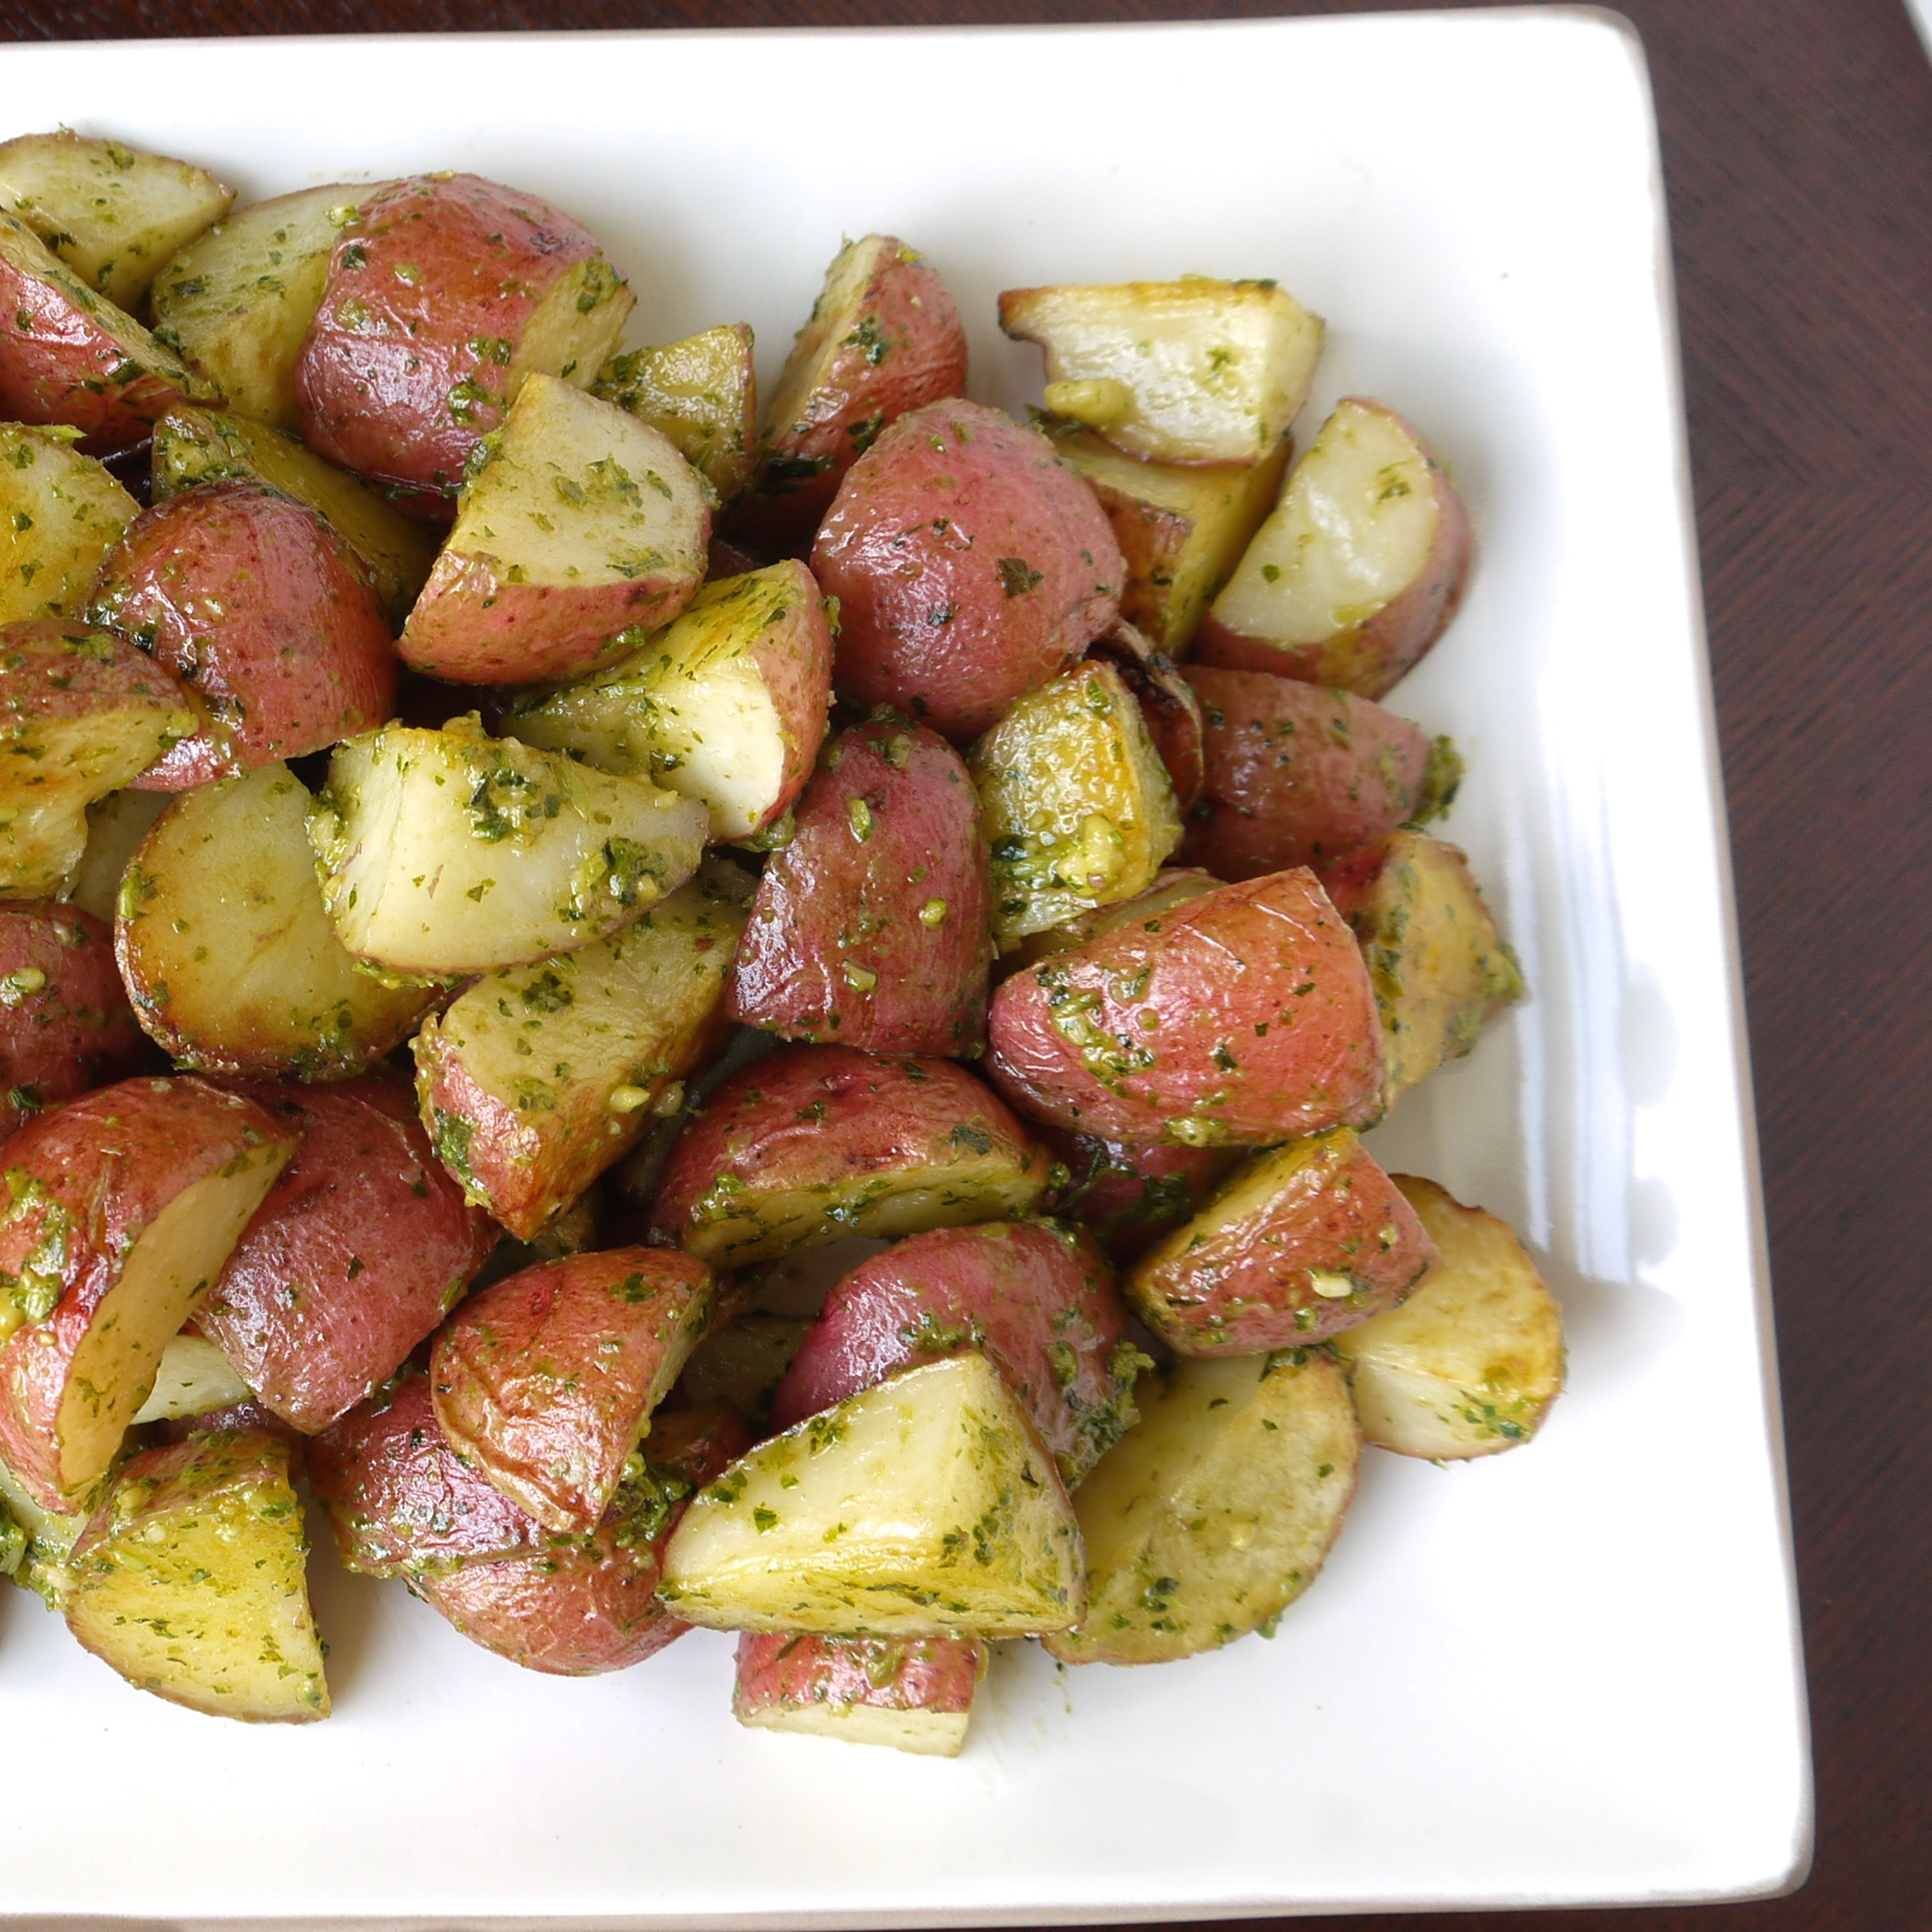 Roasted Potatoes with Kale Pesto